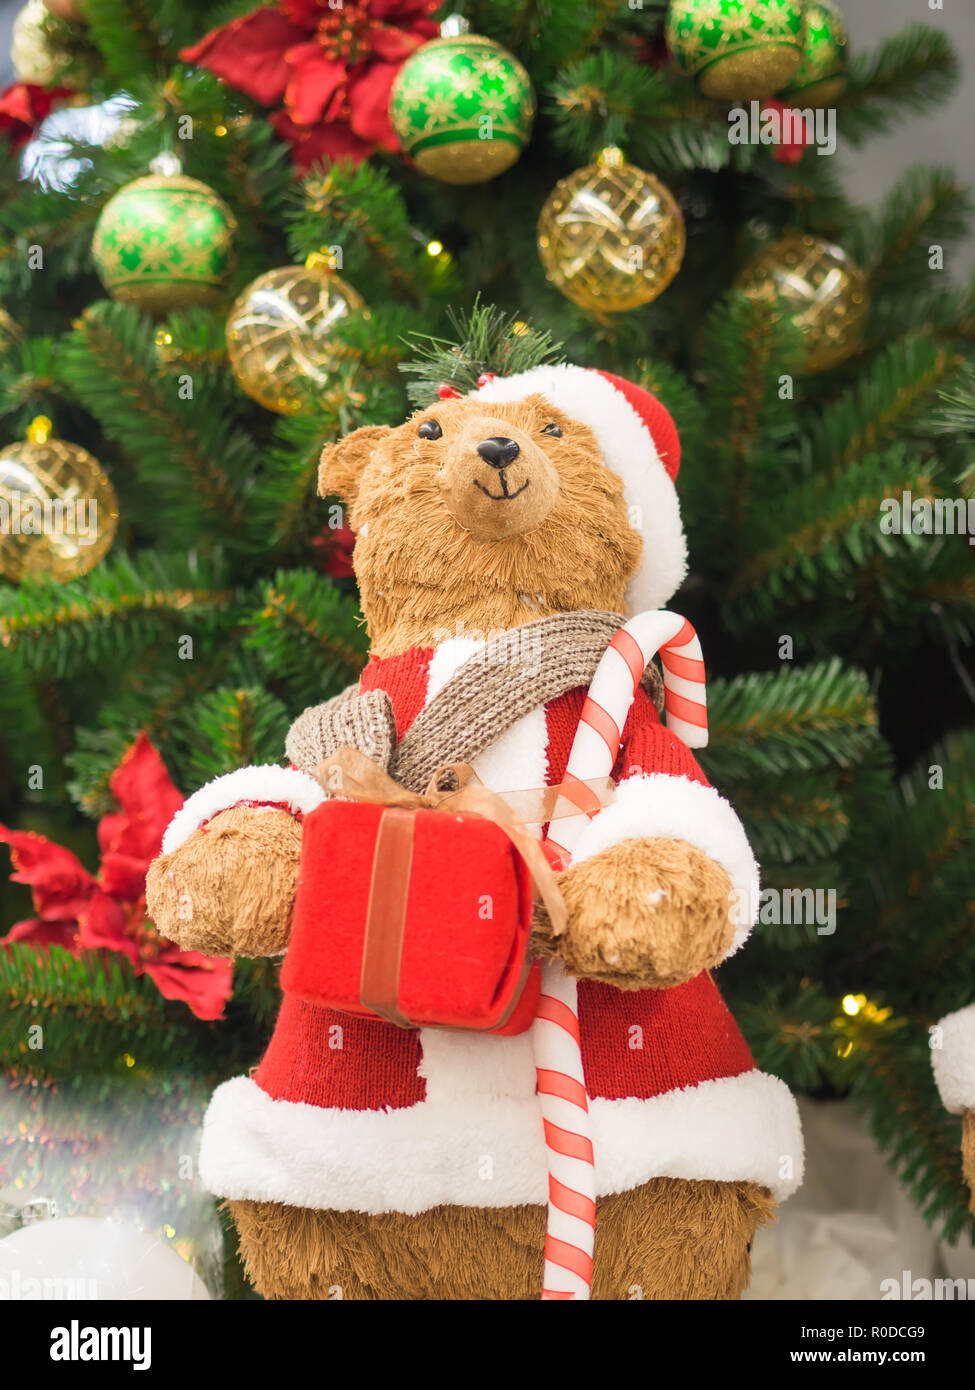 26ff679f41 A toy bear dressed as Santa Claus standing against a Christmas tree holding  a gift box. Christmas and New Year concept.